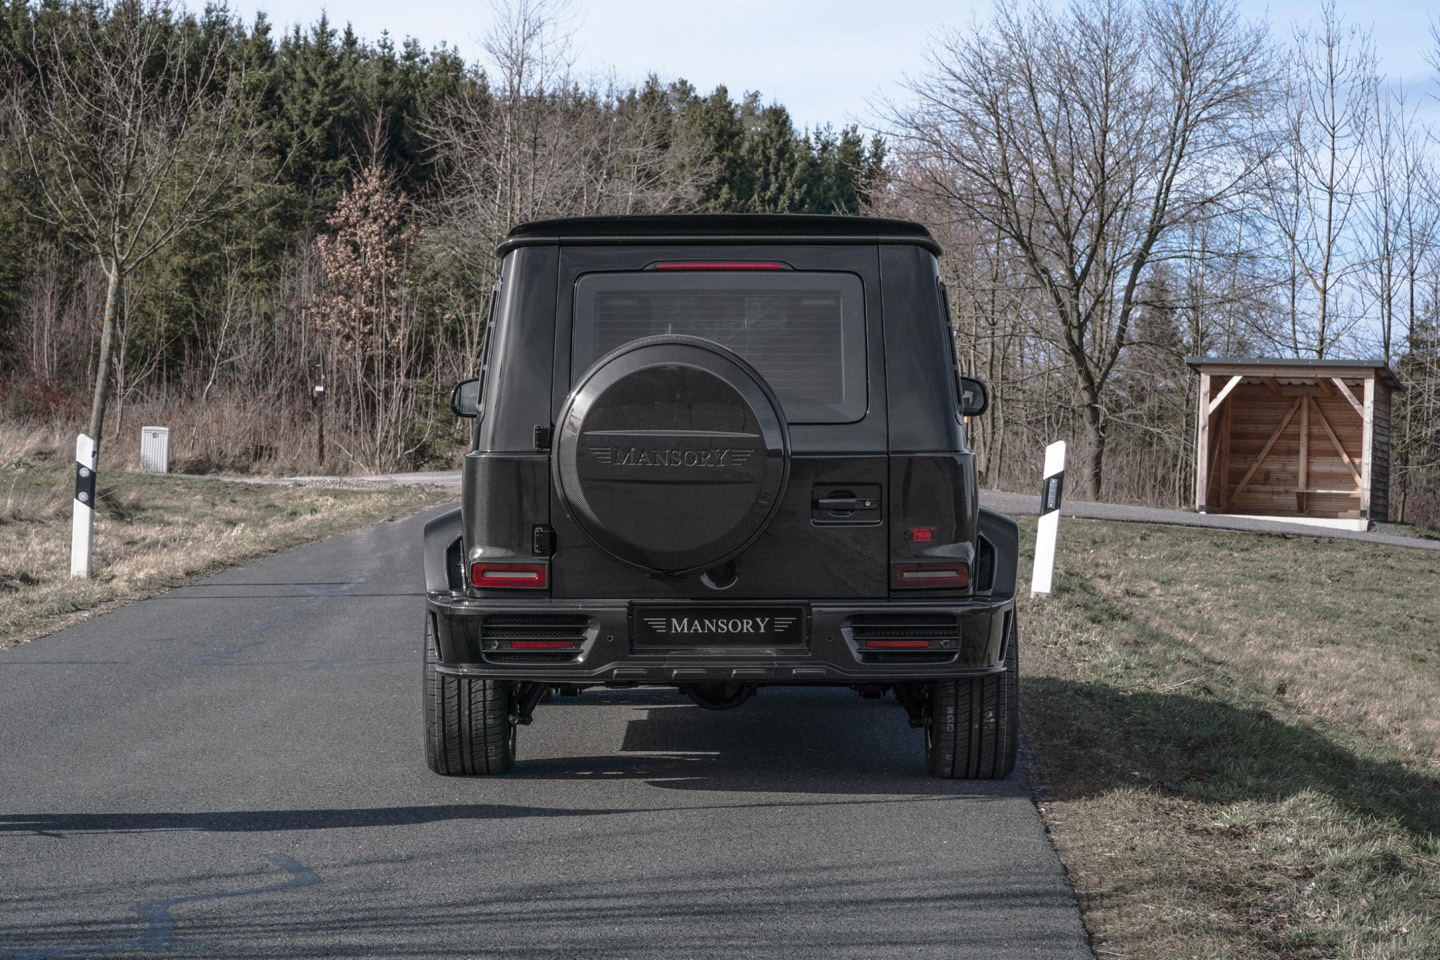 Mansory Mercedes Benz G 63 AMG Armored 2020 4